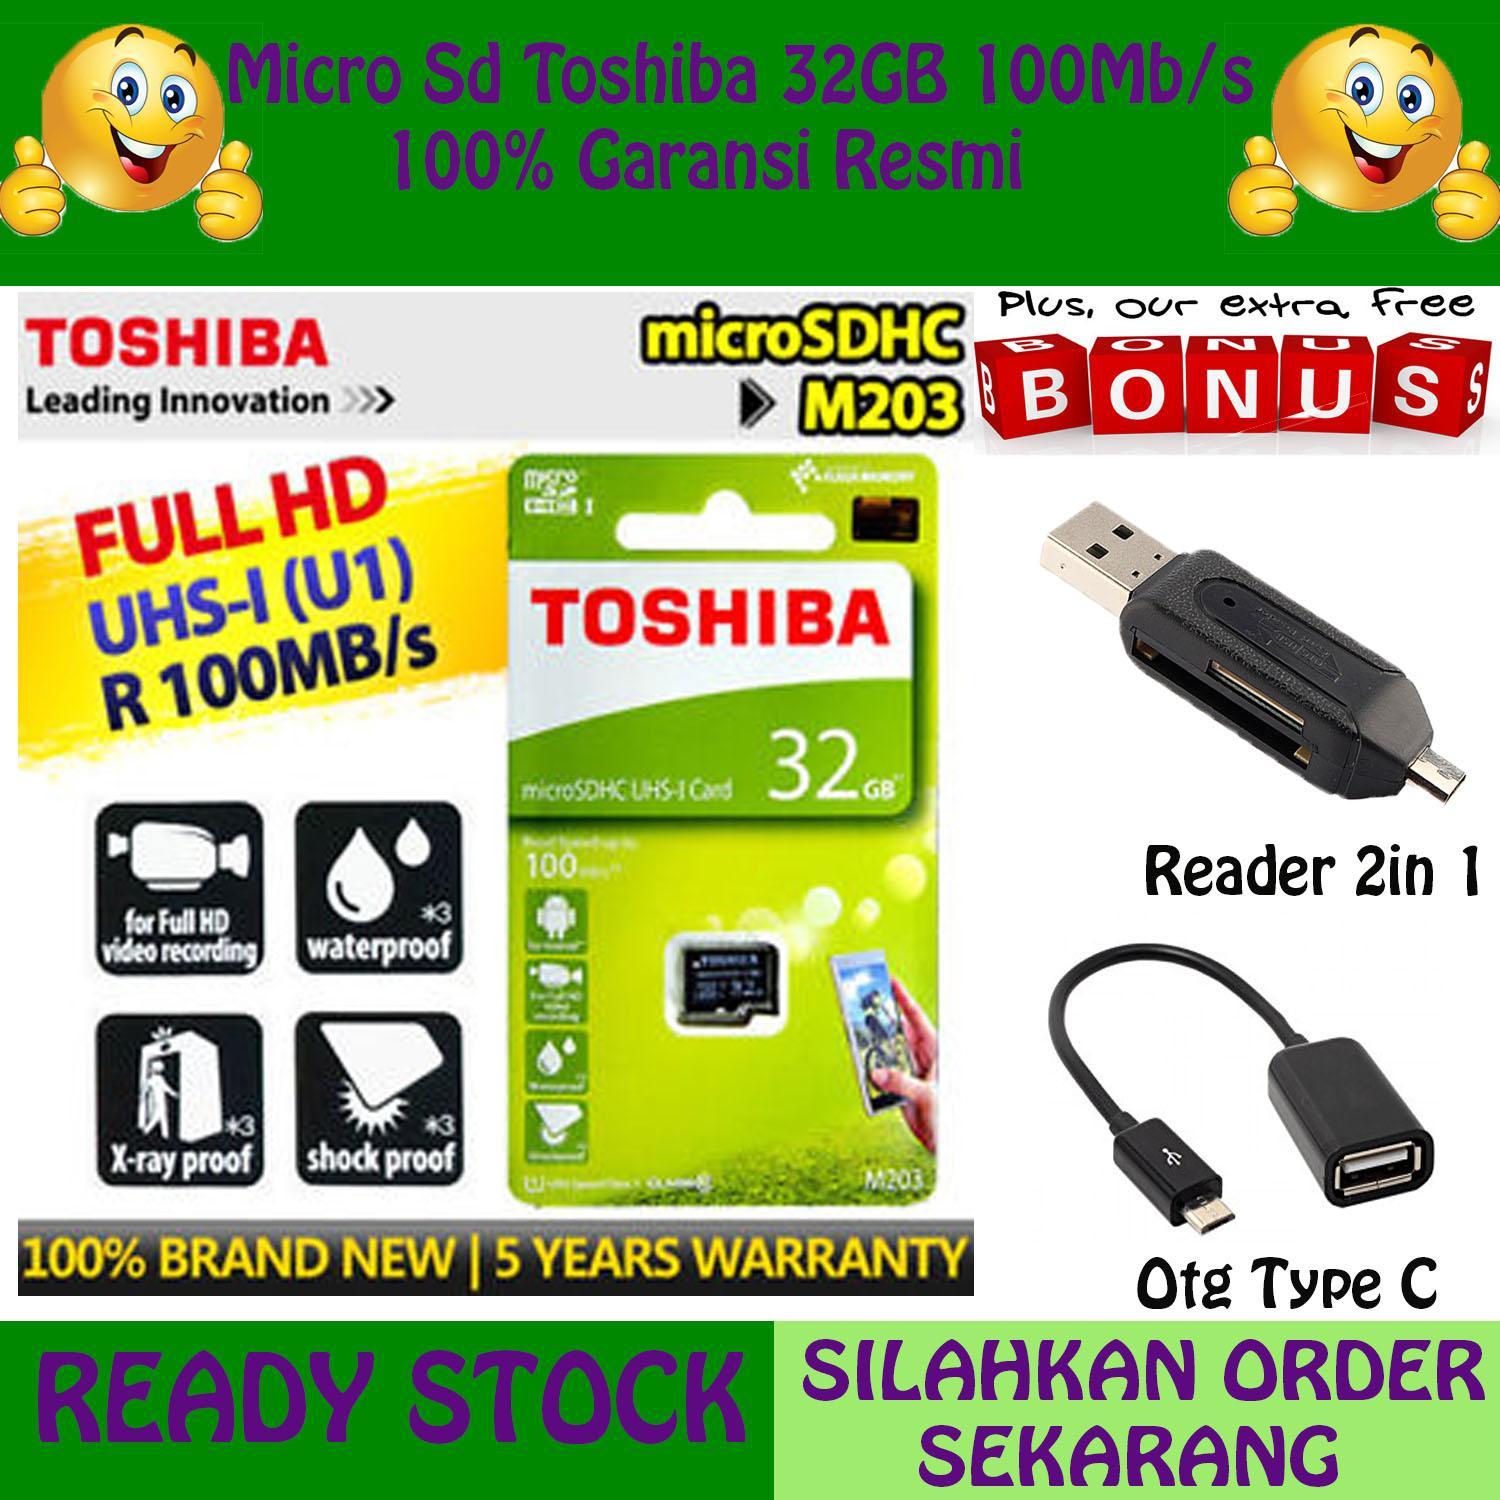 Original 100% Toshiba micro SD card TOSHIBA 32gb cl/10 speed up 100MB/s class 10 Memory Cad Micro Sdhc GRATIS Reader 2in1 + Otg Type C